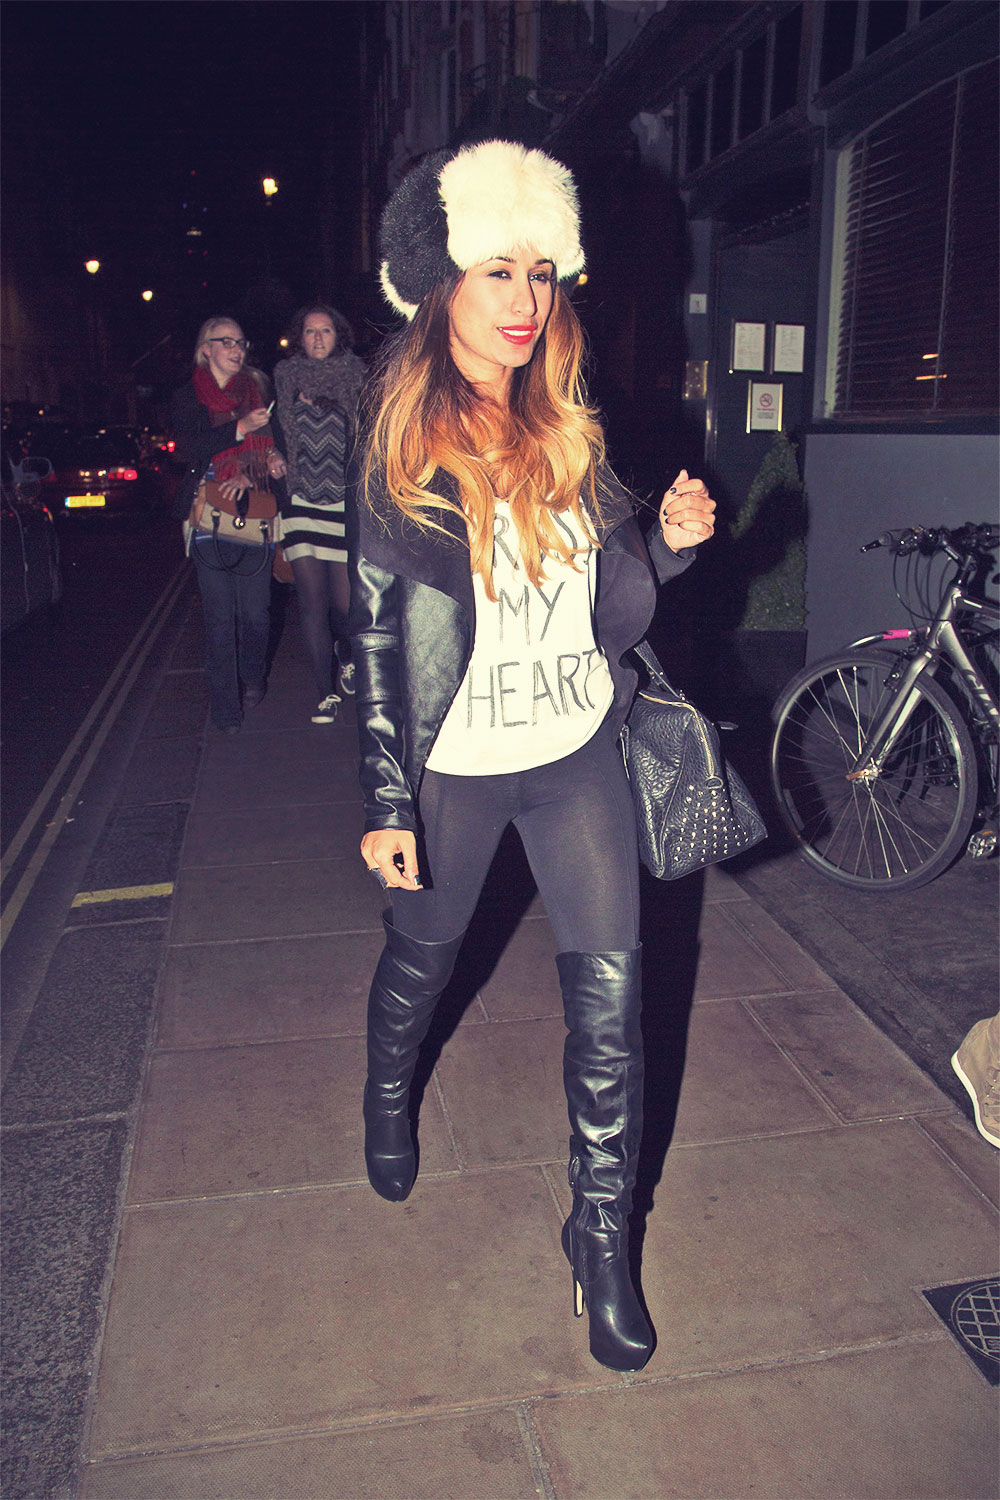 Preeya Kalidas leaving Groucho Club in Soho